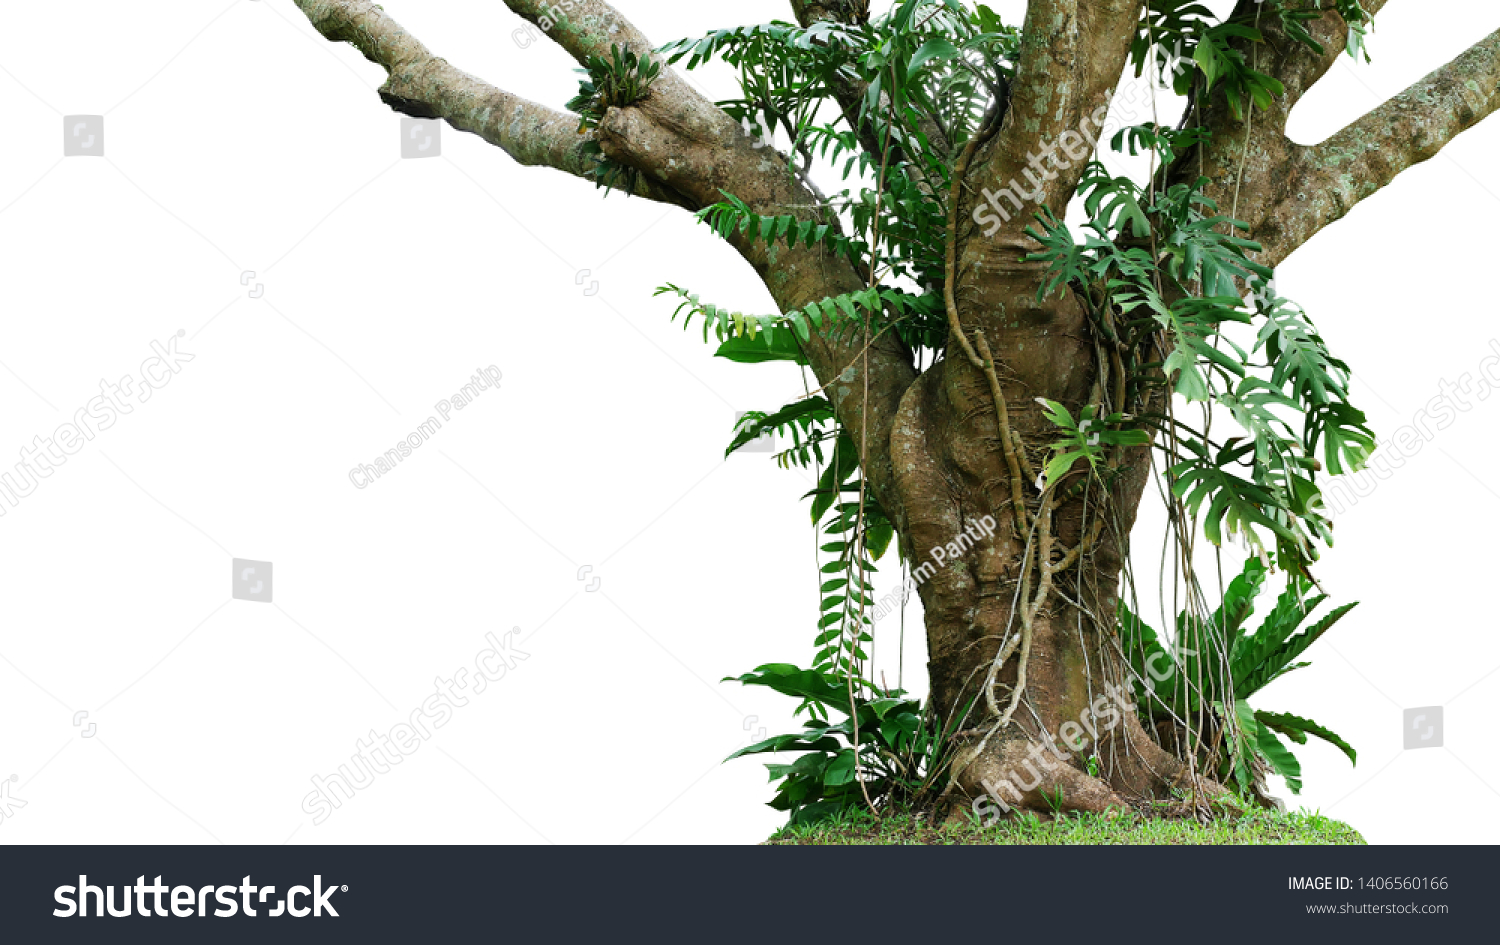 Jungle tree trunk with climbing Monstera (Monstera deliciosa), bird's nest fern, philodendron and forest orchid green leaves tropical foliage plants isolated on white background with clipping path. #1406560166